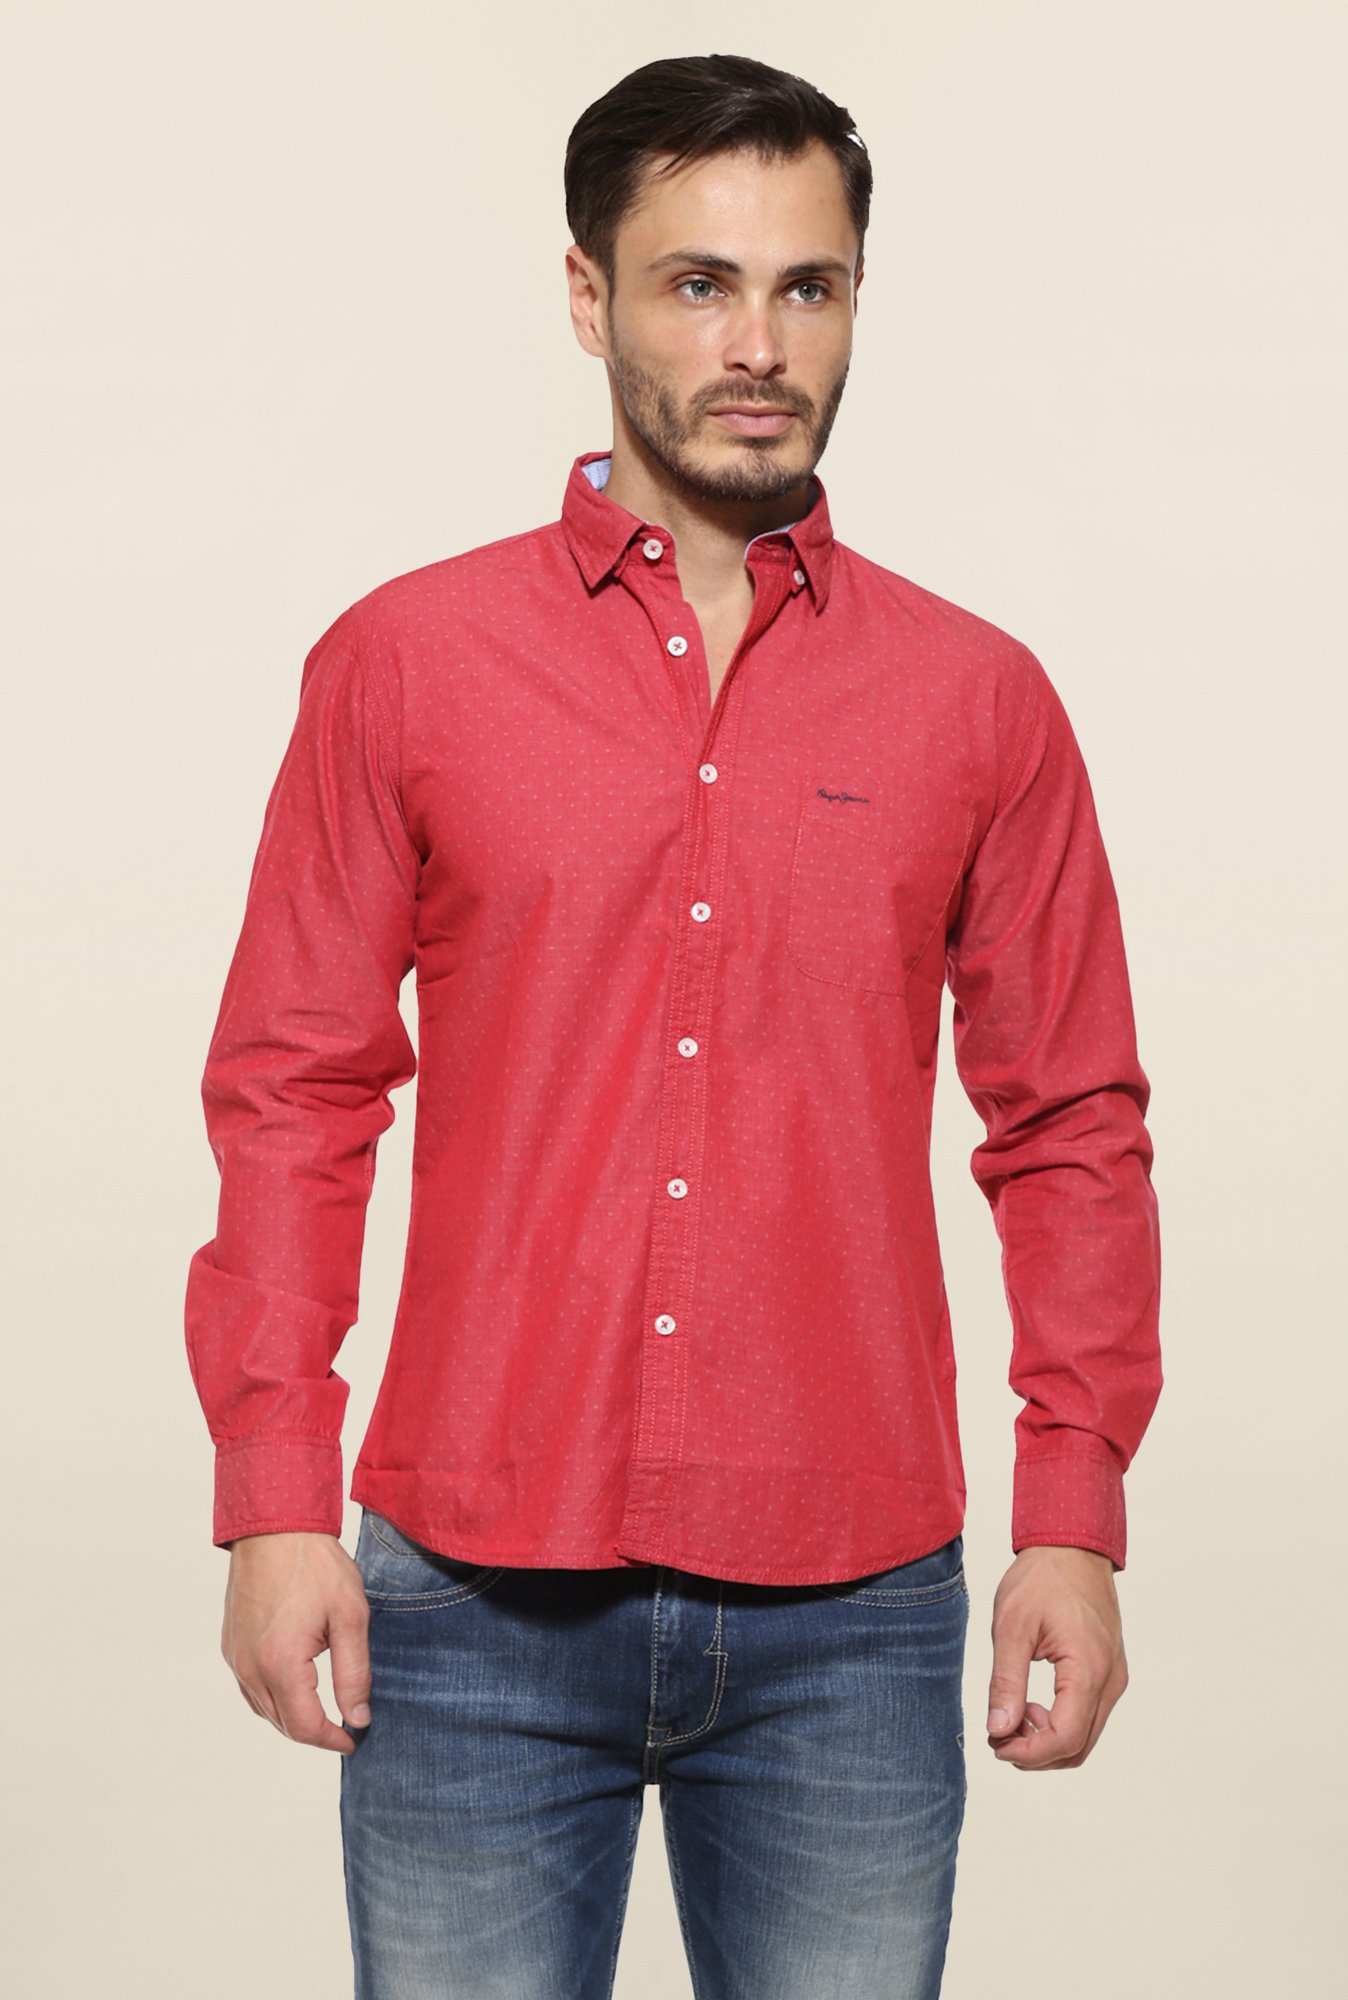 Pepe Jeans Red Cotton Casual Shirt